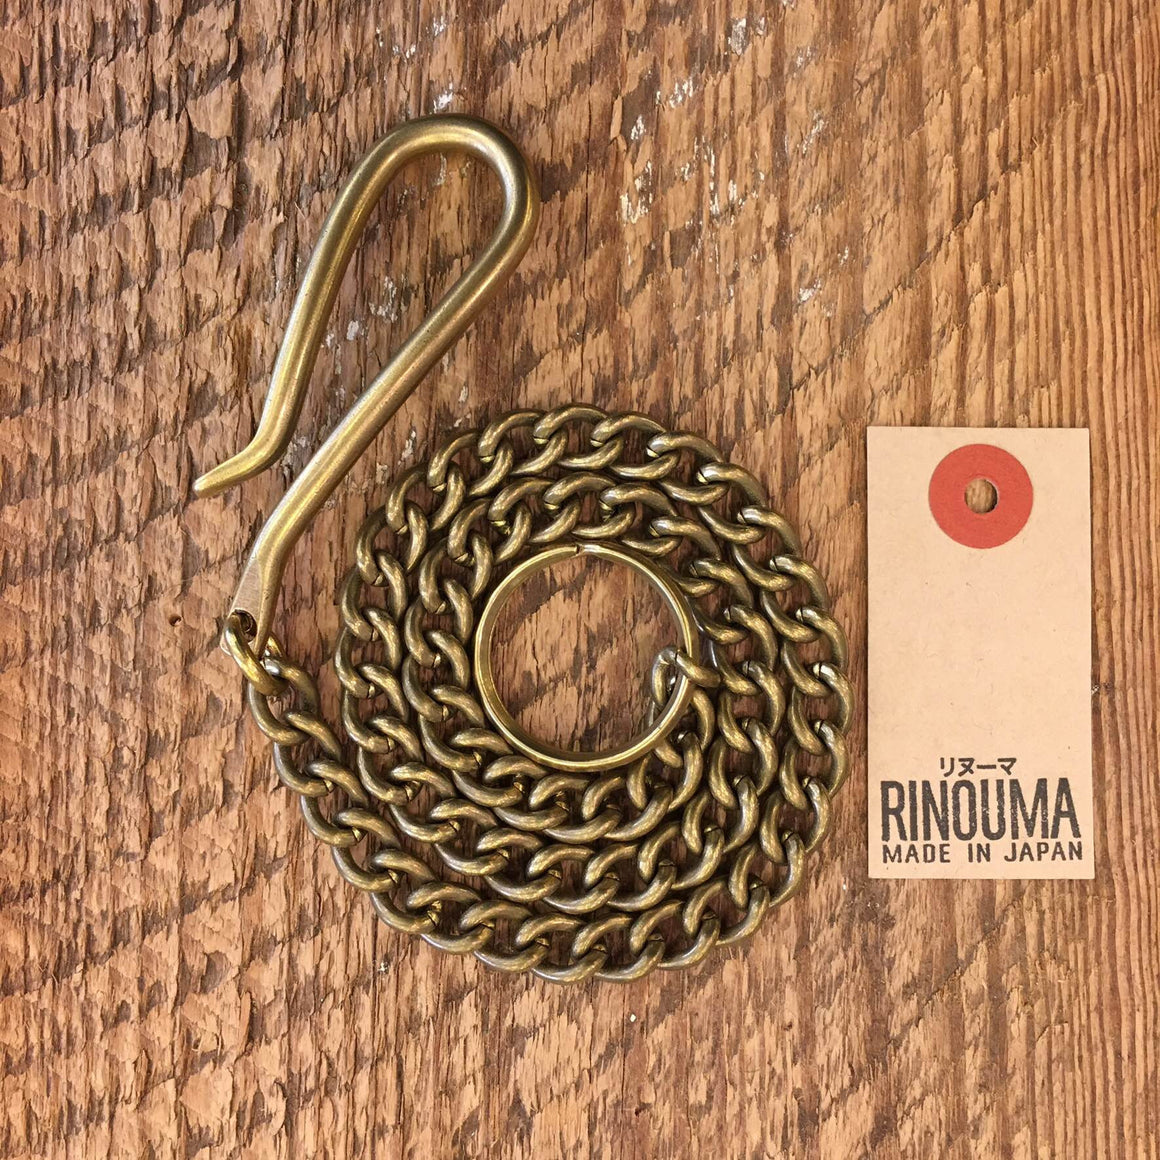 RINOUMA Twist Key Chain w Hook Brass M - Brund - 1